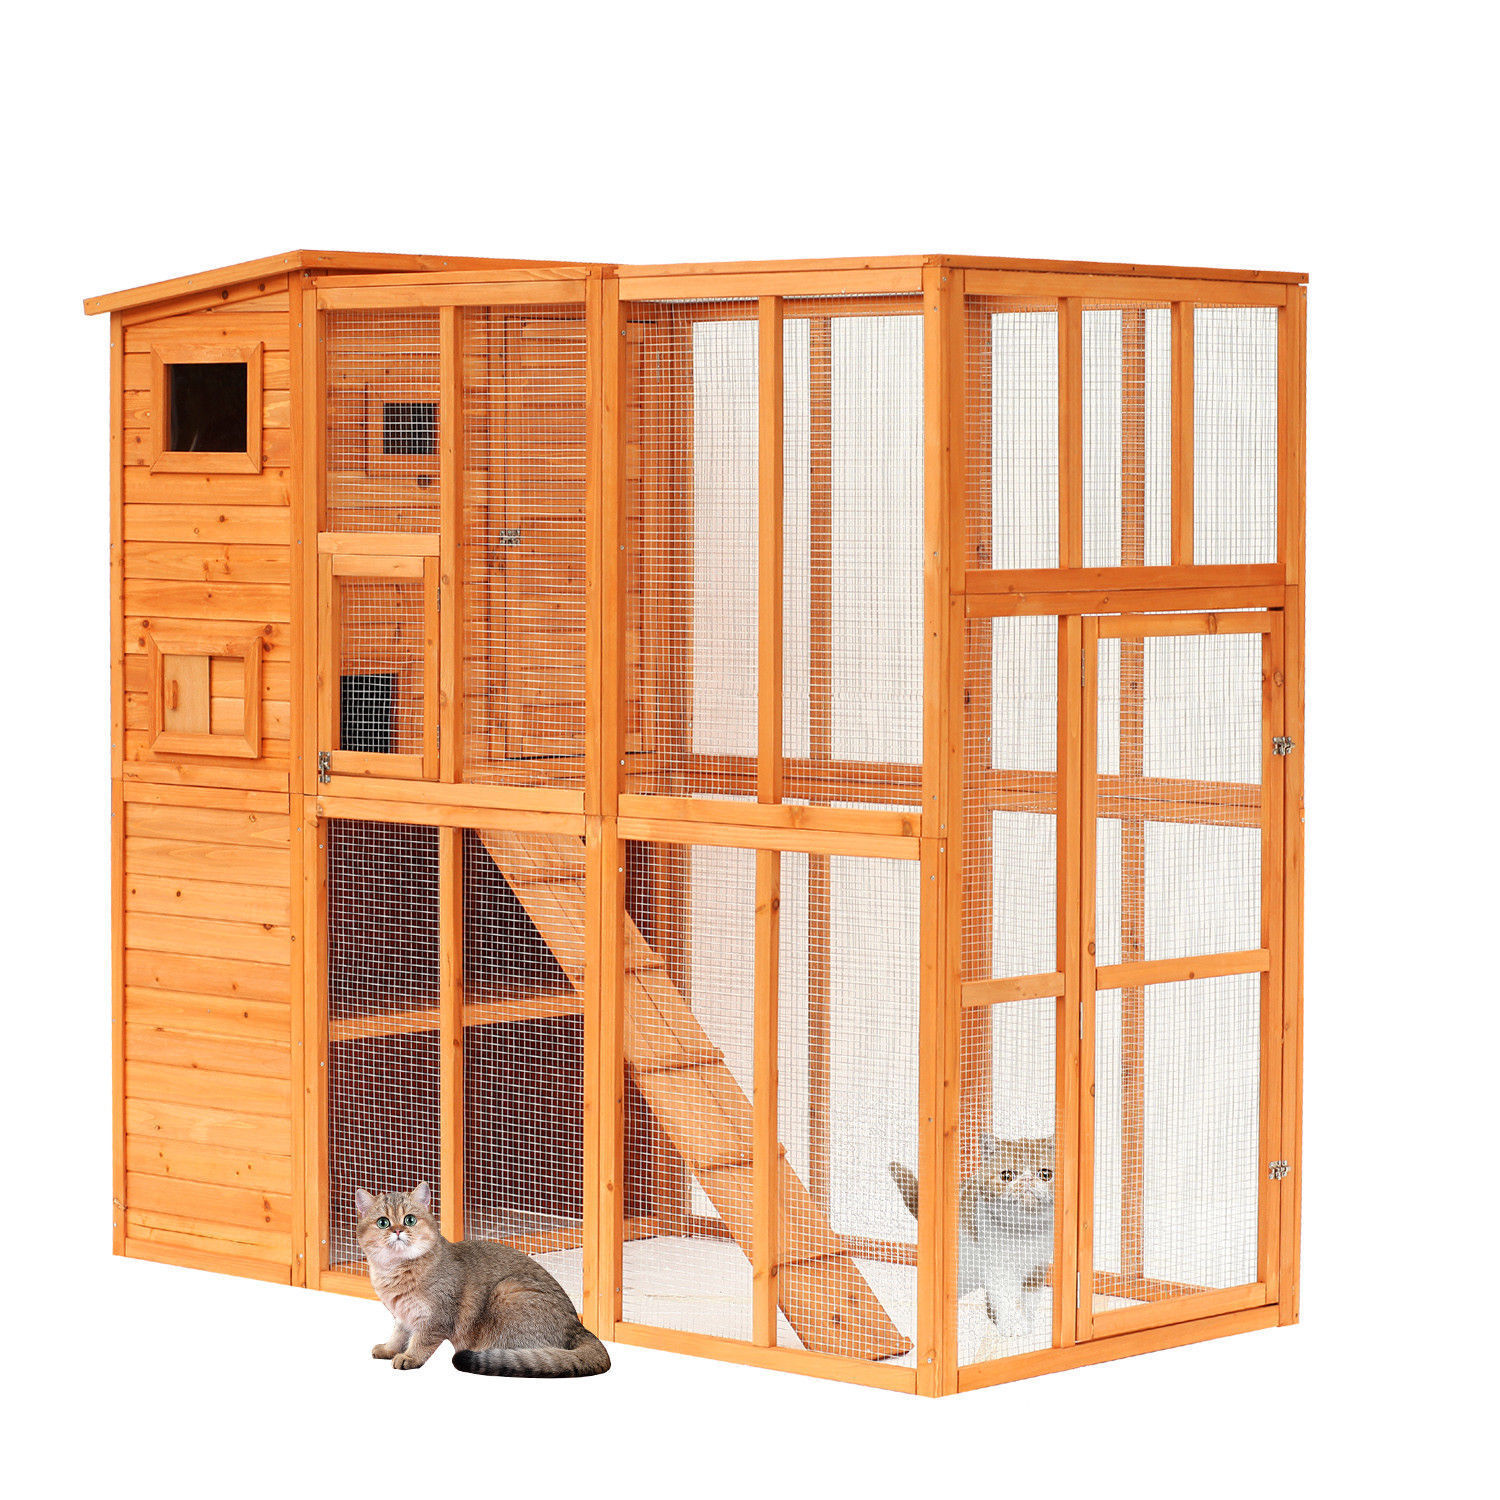 Wooden Cat Home Enclosure Pet House Shelter Cage